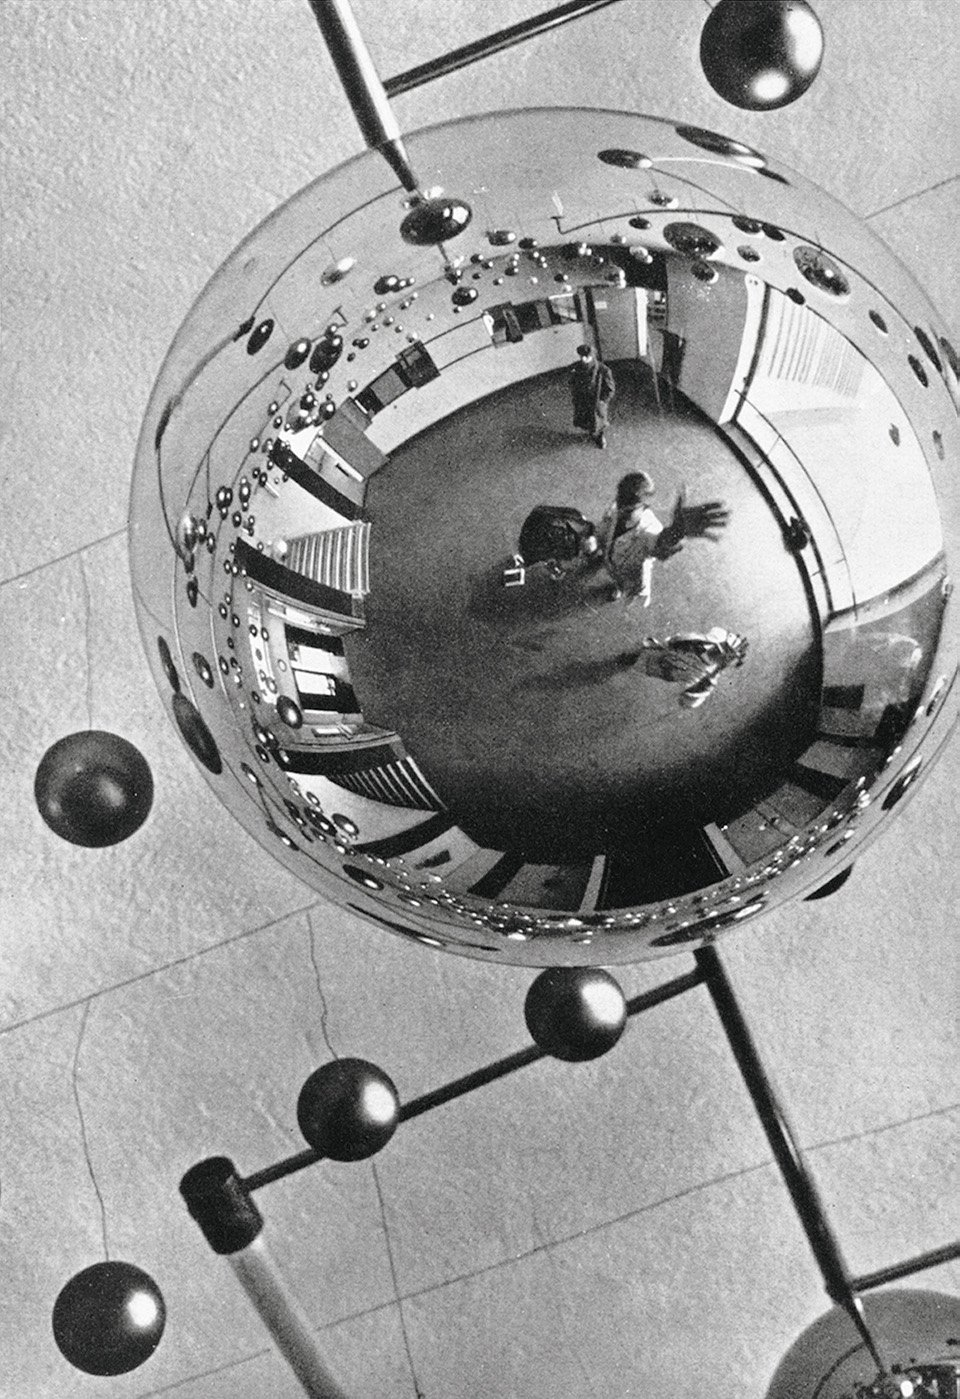 Seite 315 | Walter Funkat: The lobby of the Bauhaus building, reflected in one of the glass spheres which decorated the buidling during the Metallic Festival, 1929. Copyright: Bauhaus-Archiv, Berlin Inv. F2004/49.1; © Bauhaus-Archiv, Berlin